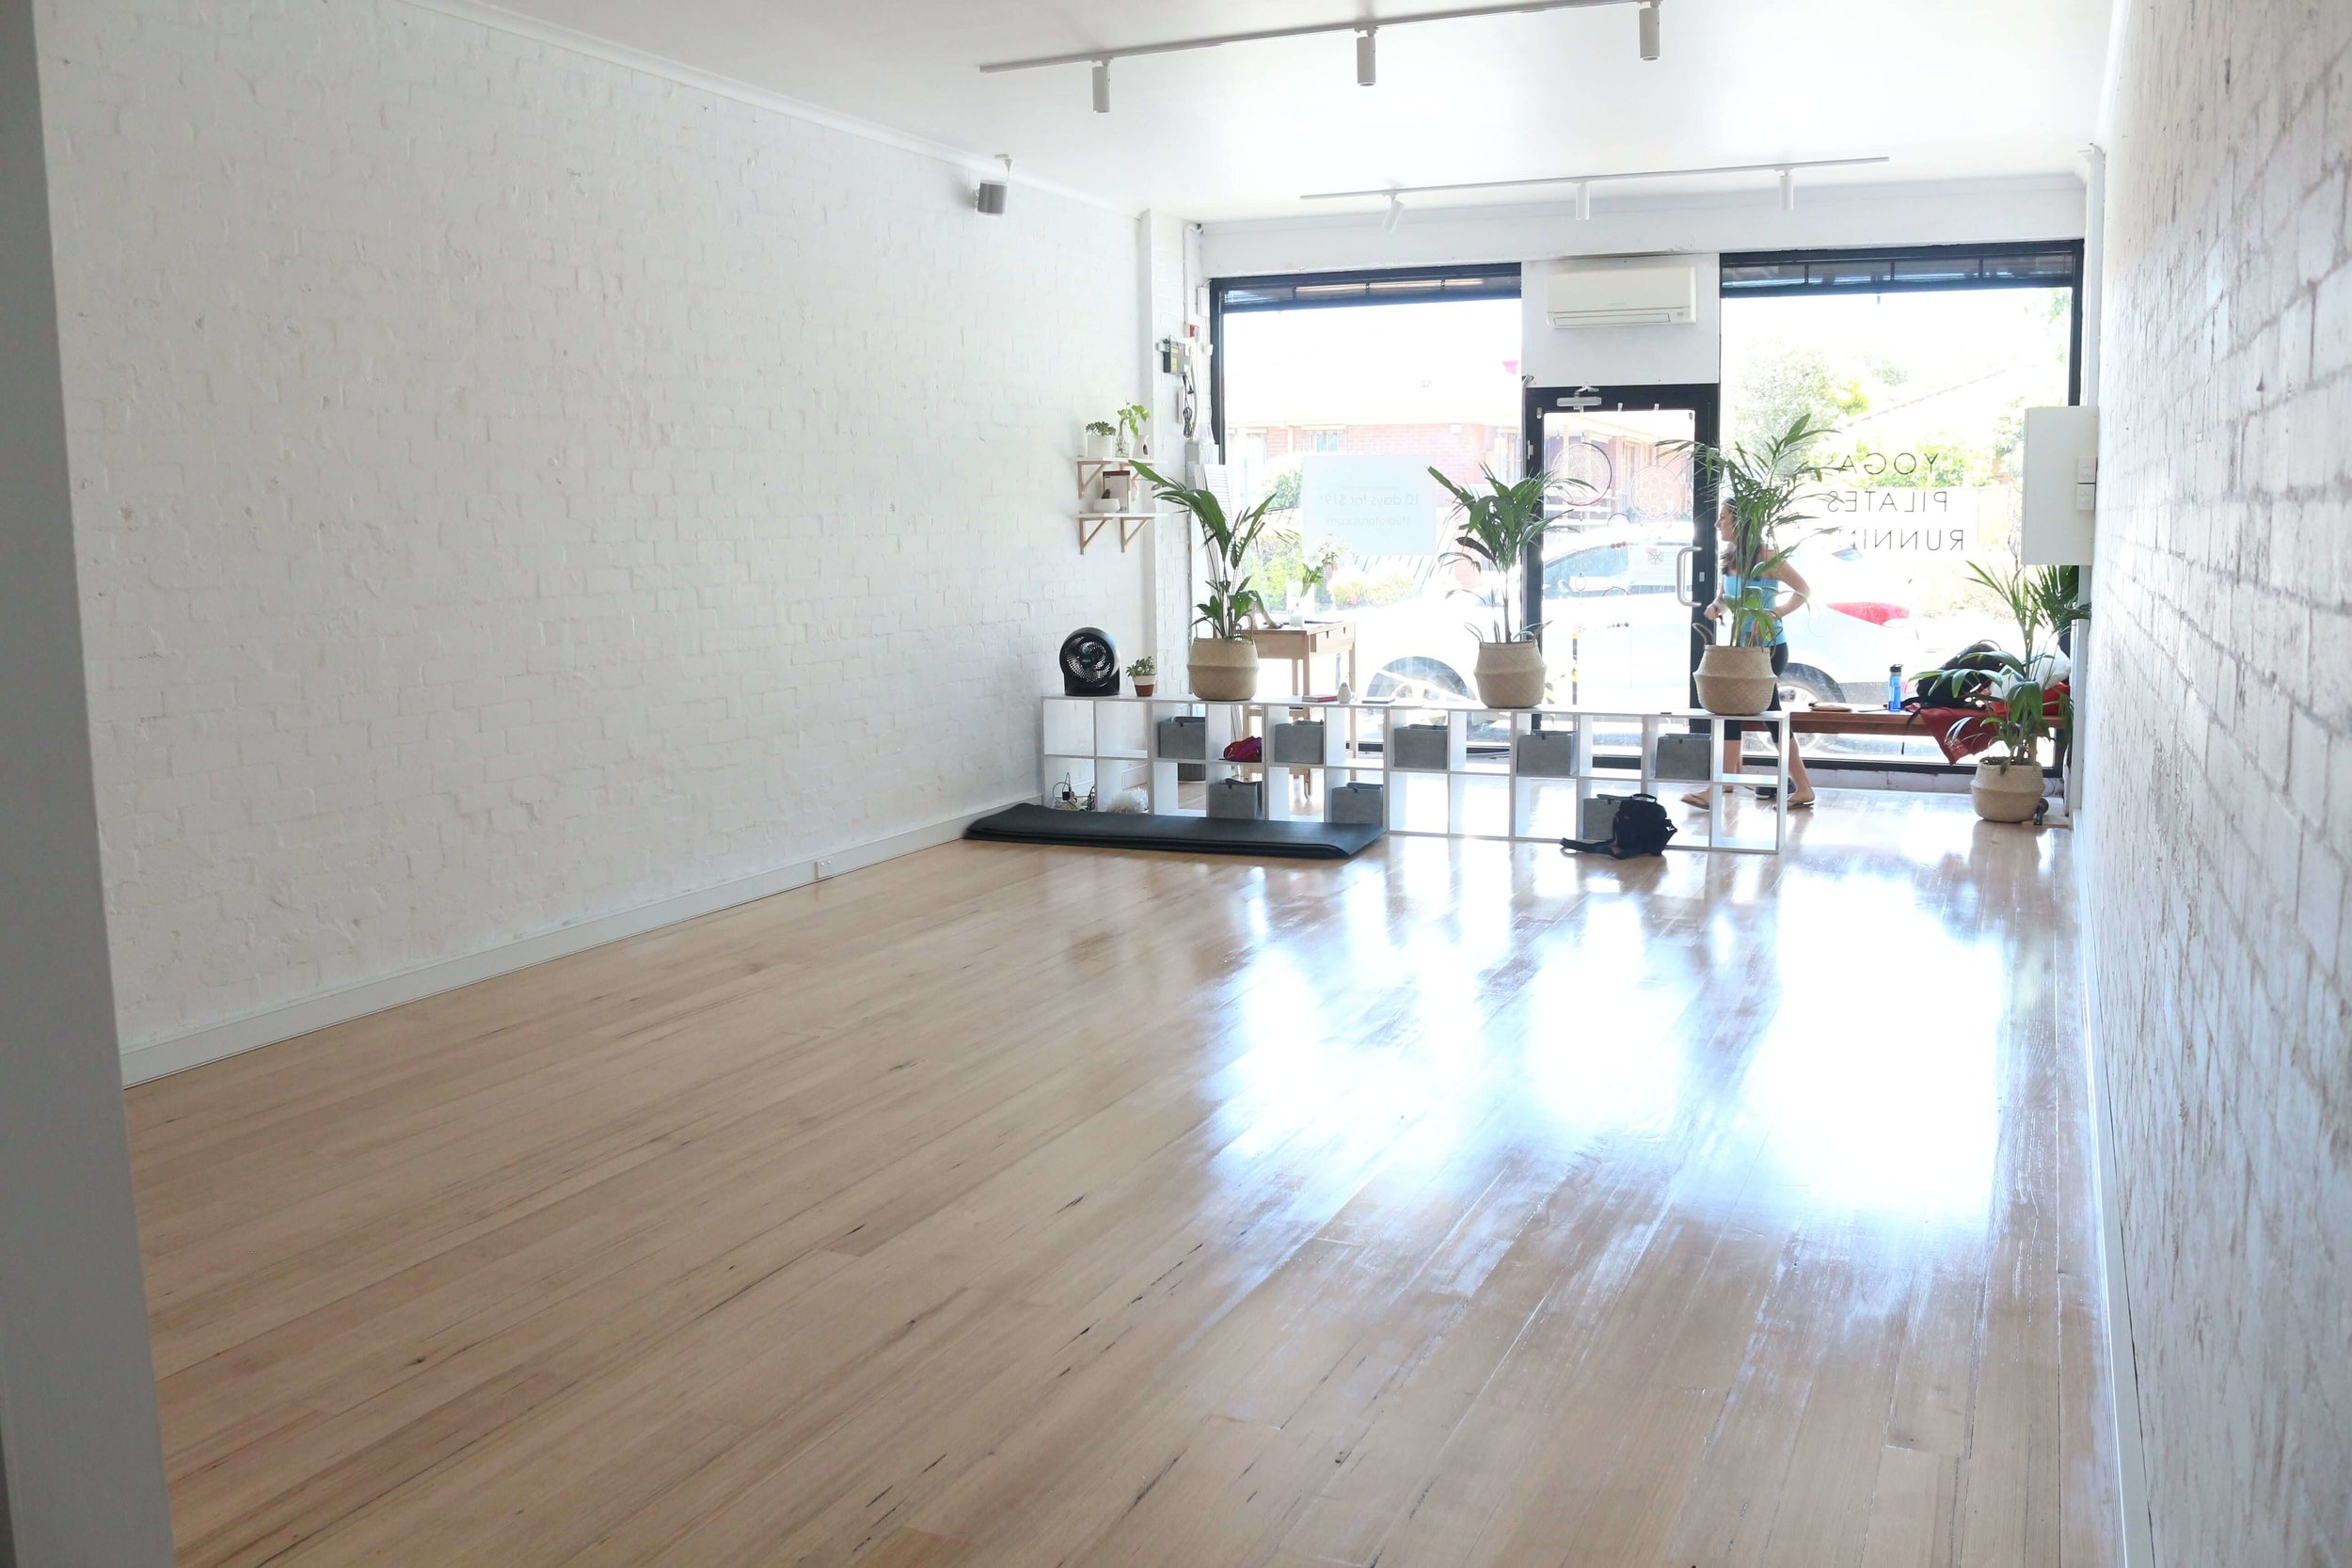 A bright, light filled studio. - AND WE'RE JUST A STONE'S THROW AWAY FROM MITCHAM.